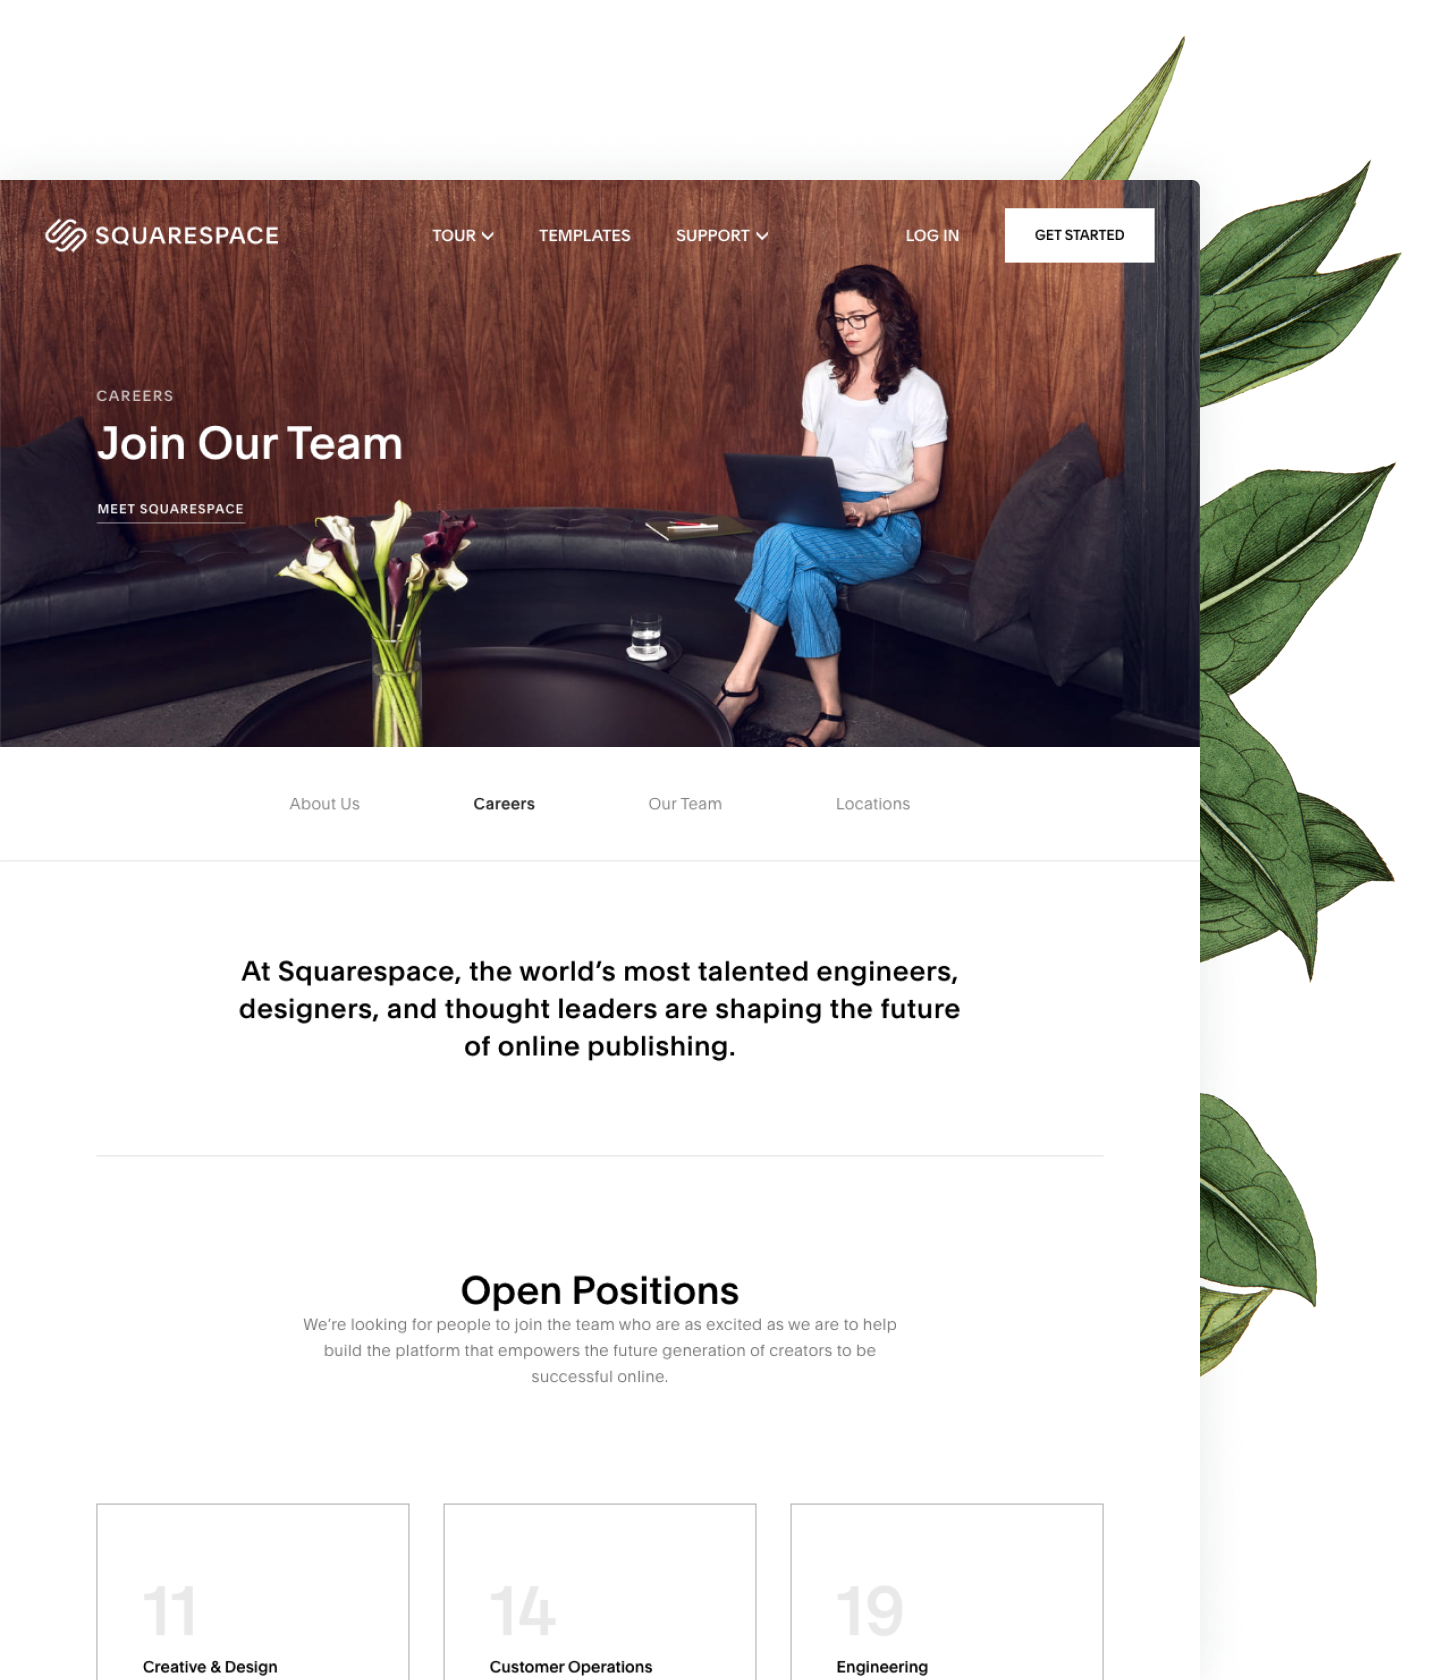 Squarespace career page